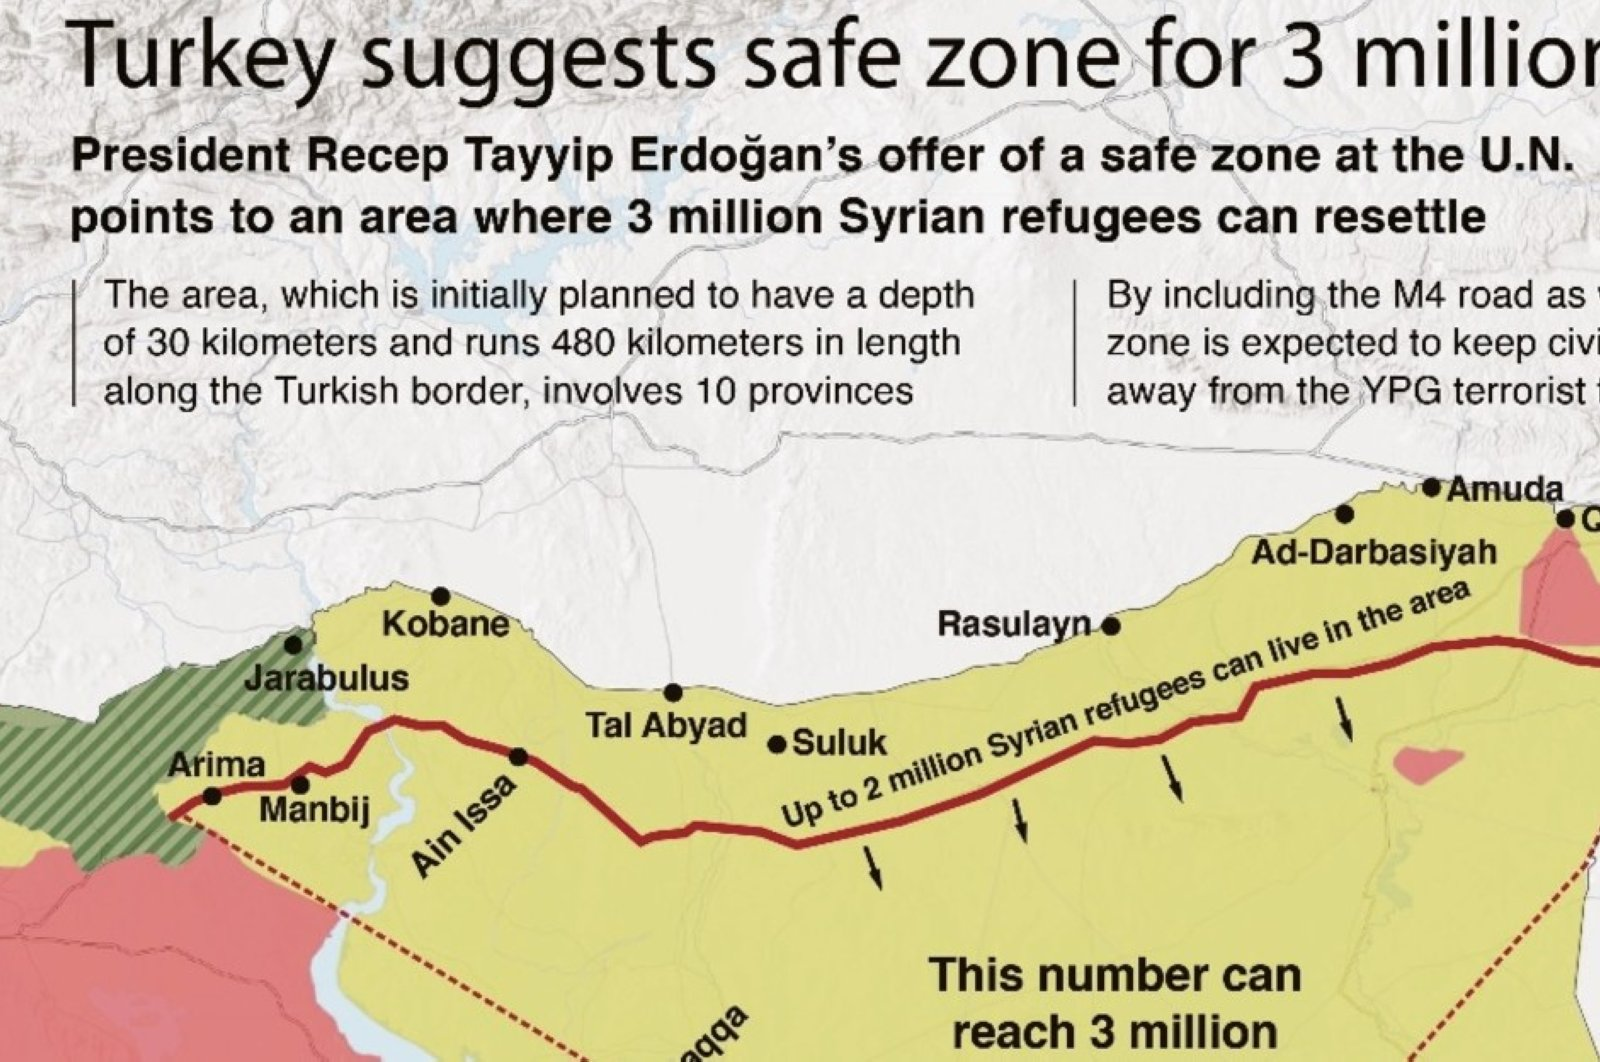 A map shows Turkey's safe zone in northern Syria, projected to be home to millions of Syrian refugees that had to leave their homes due to the nine-year long conflict in the country.